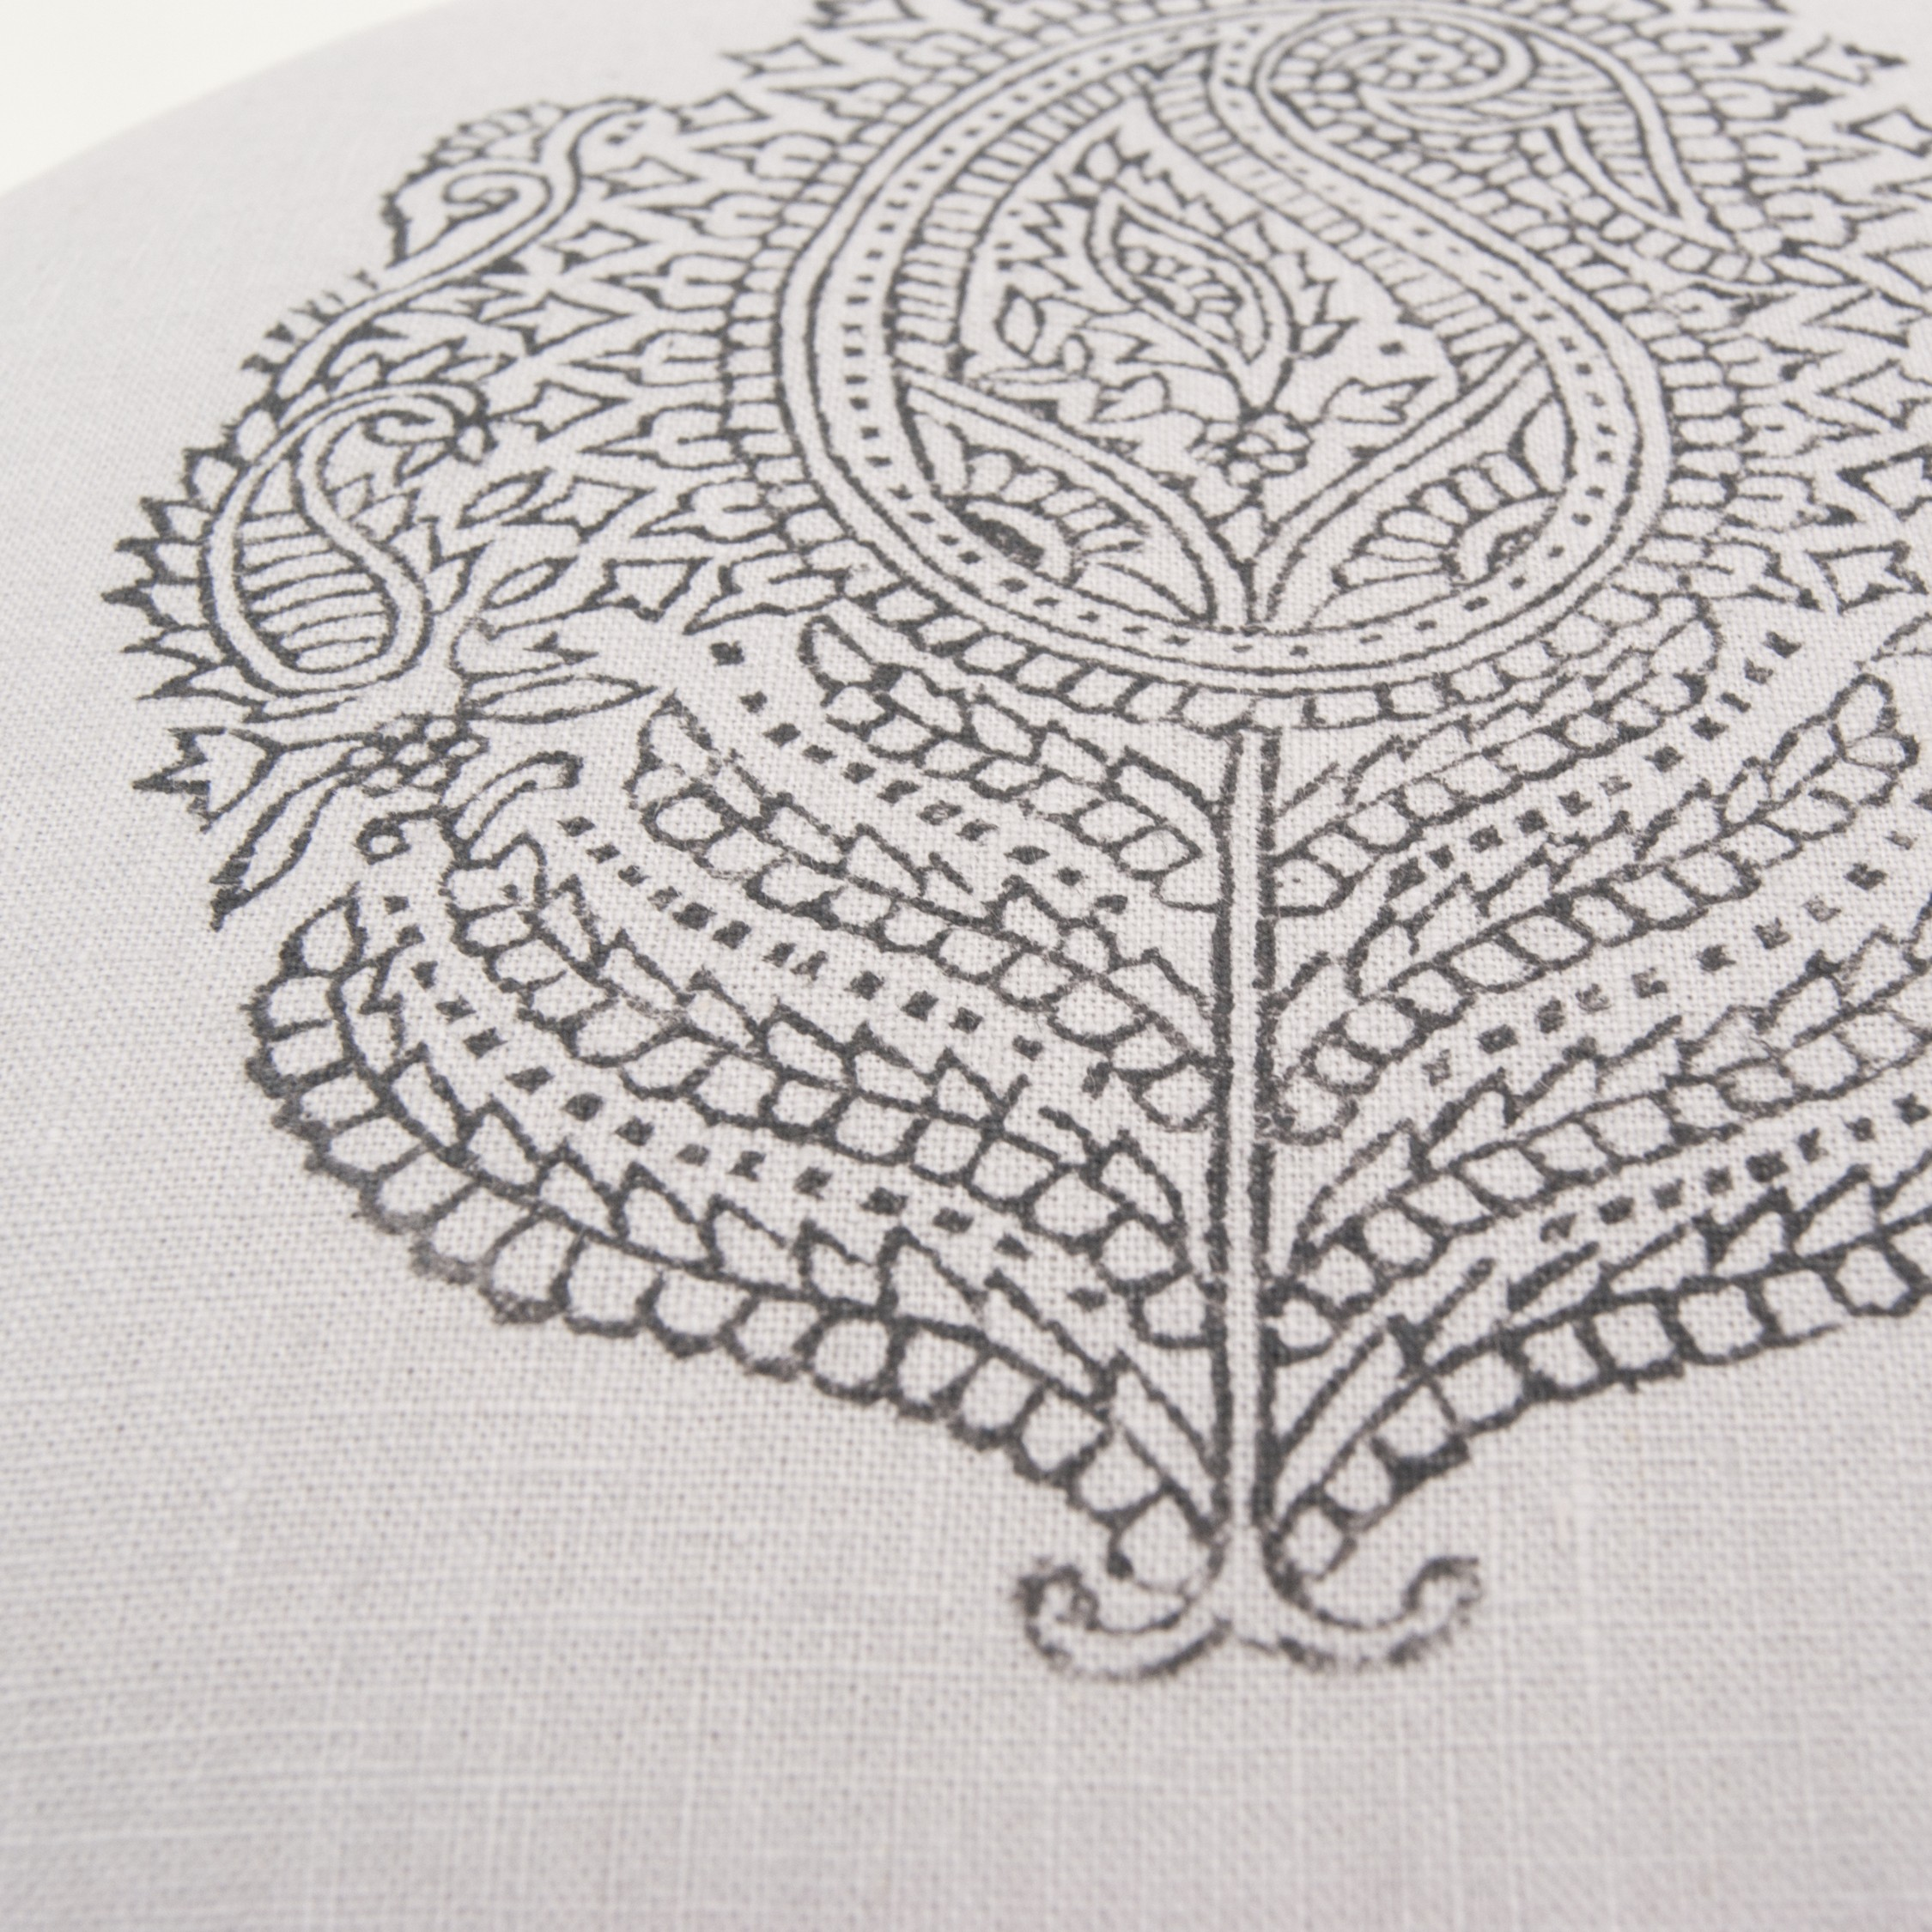 Close up of the handprinted Paisley print on the meditation cushion by Pure Prana Label